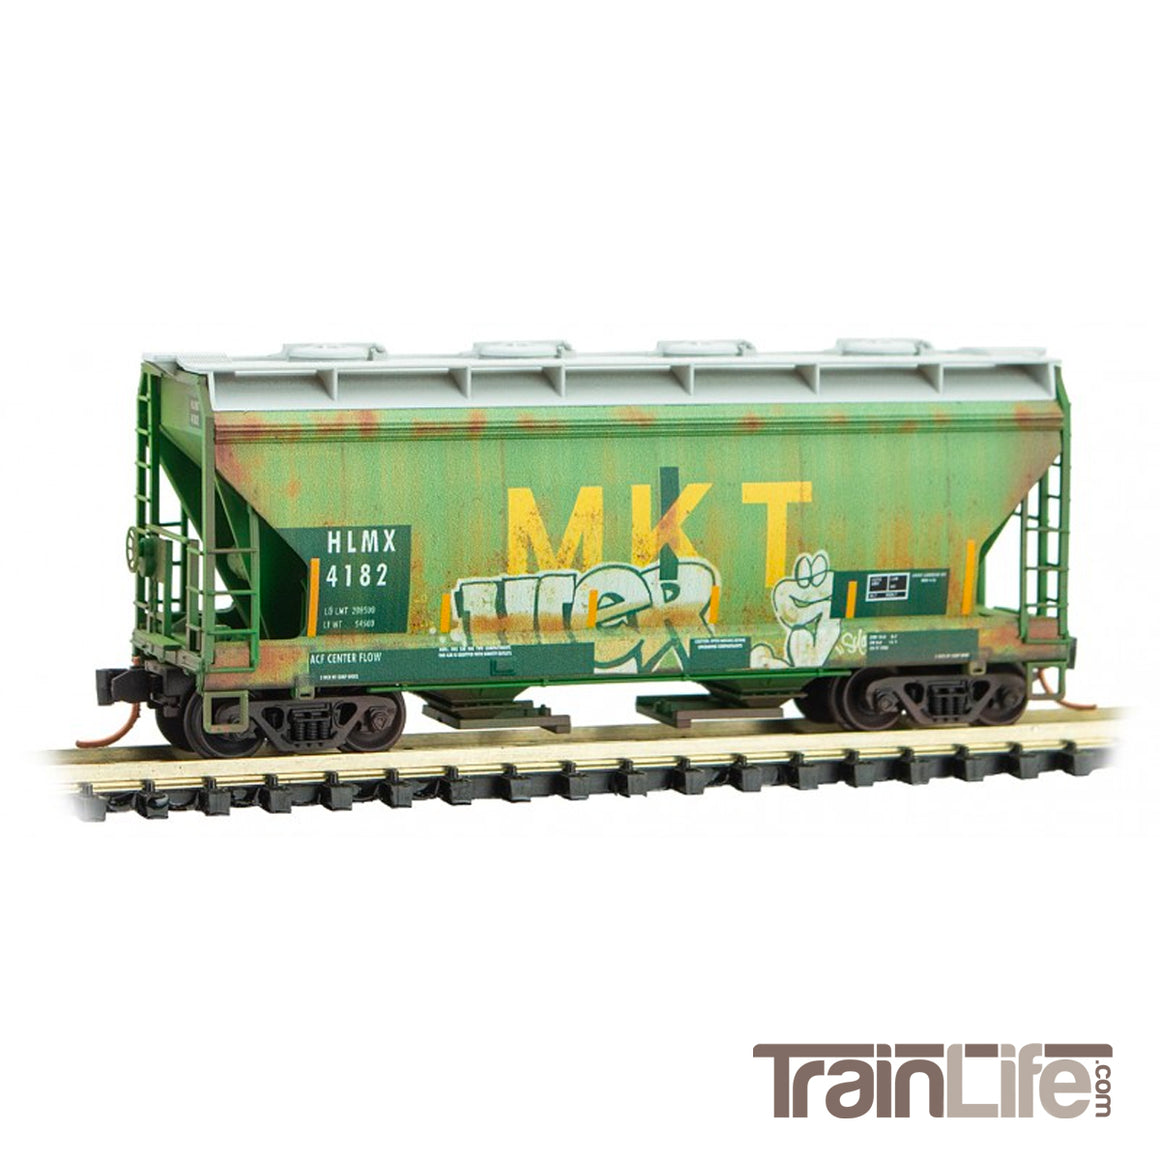 N Scale: 2-Bay Covered Hopper - HLMX 'Ex-MKT' Graffiti